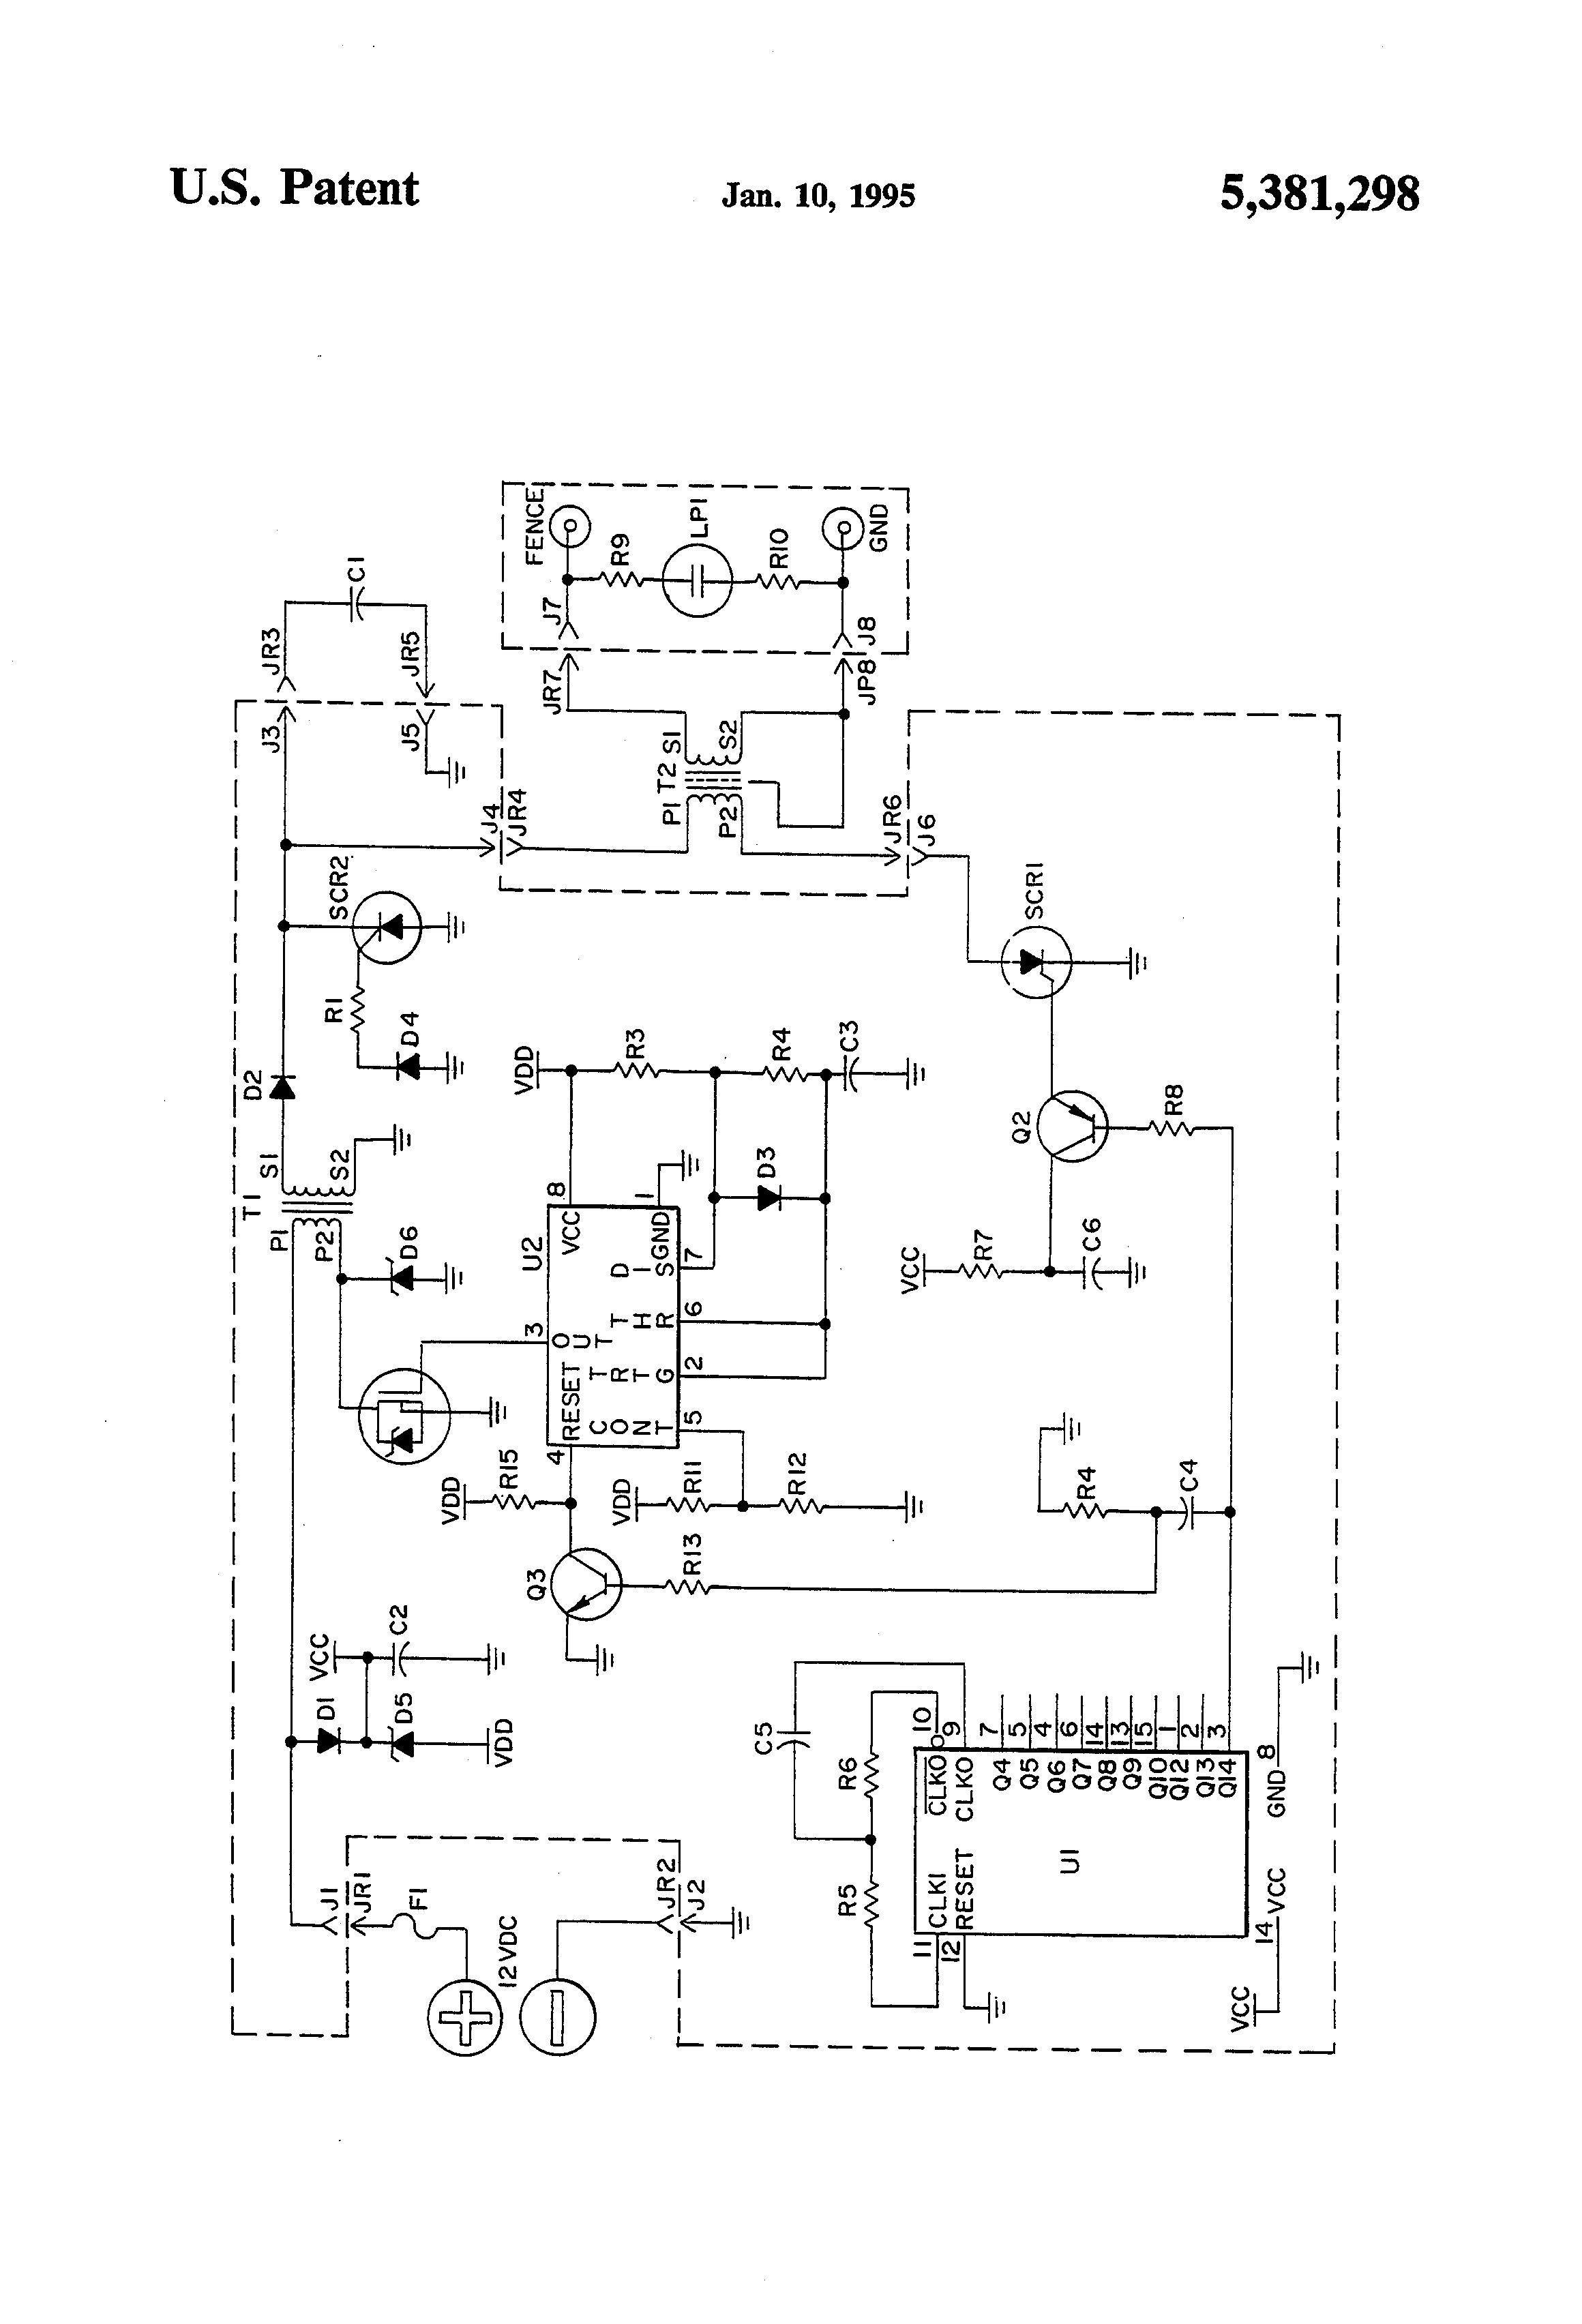 1938 Chevy Truck Wiring Diagram Also How To Electric Fence Diagram - Electric Fence Wiring Diagram